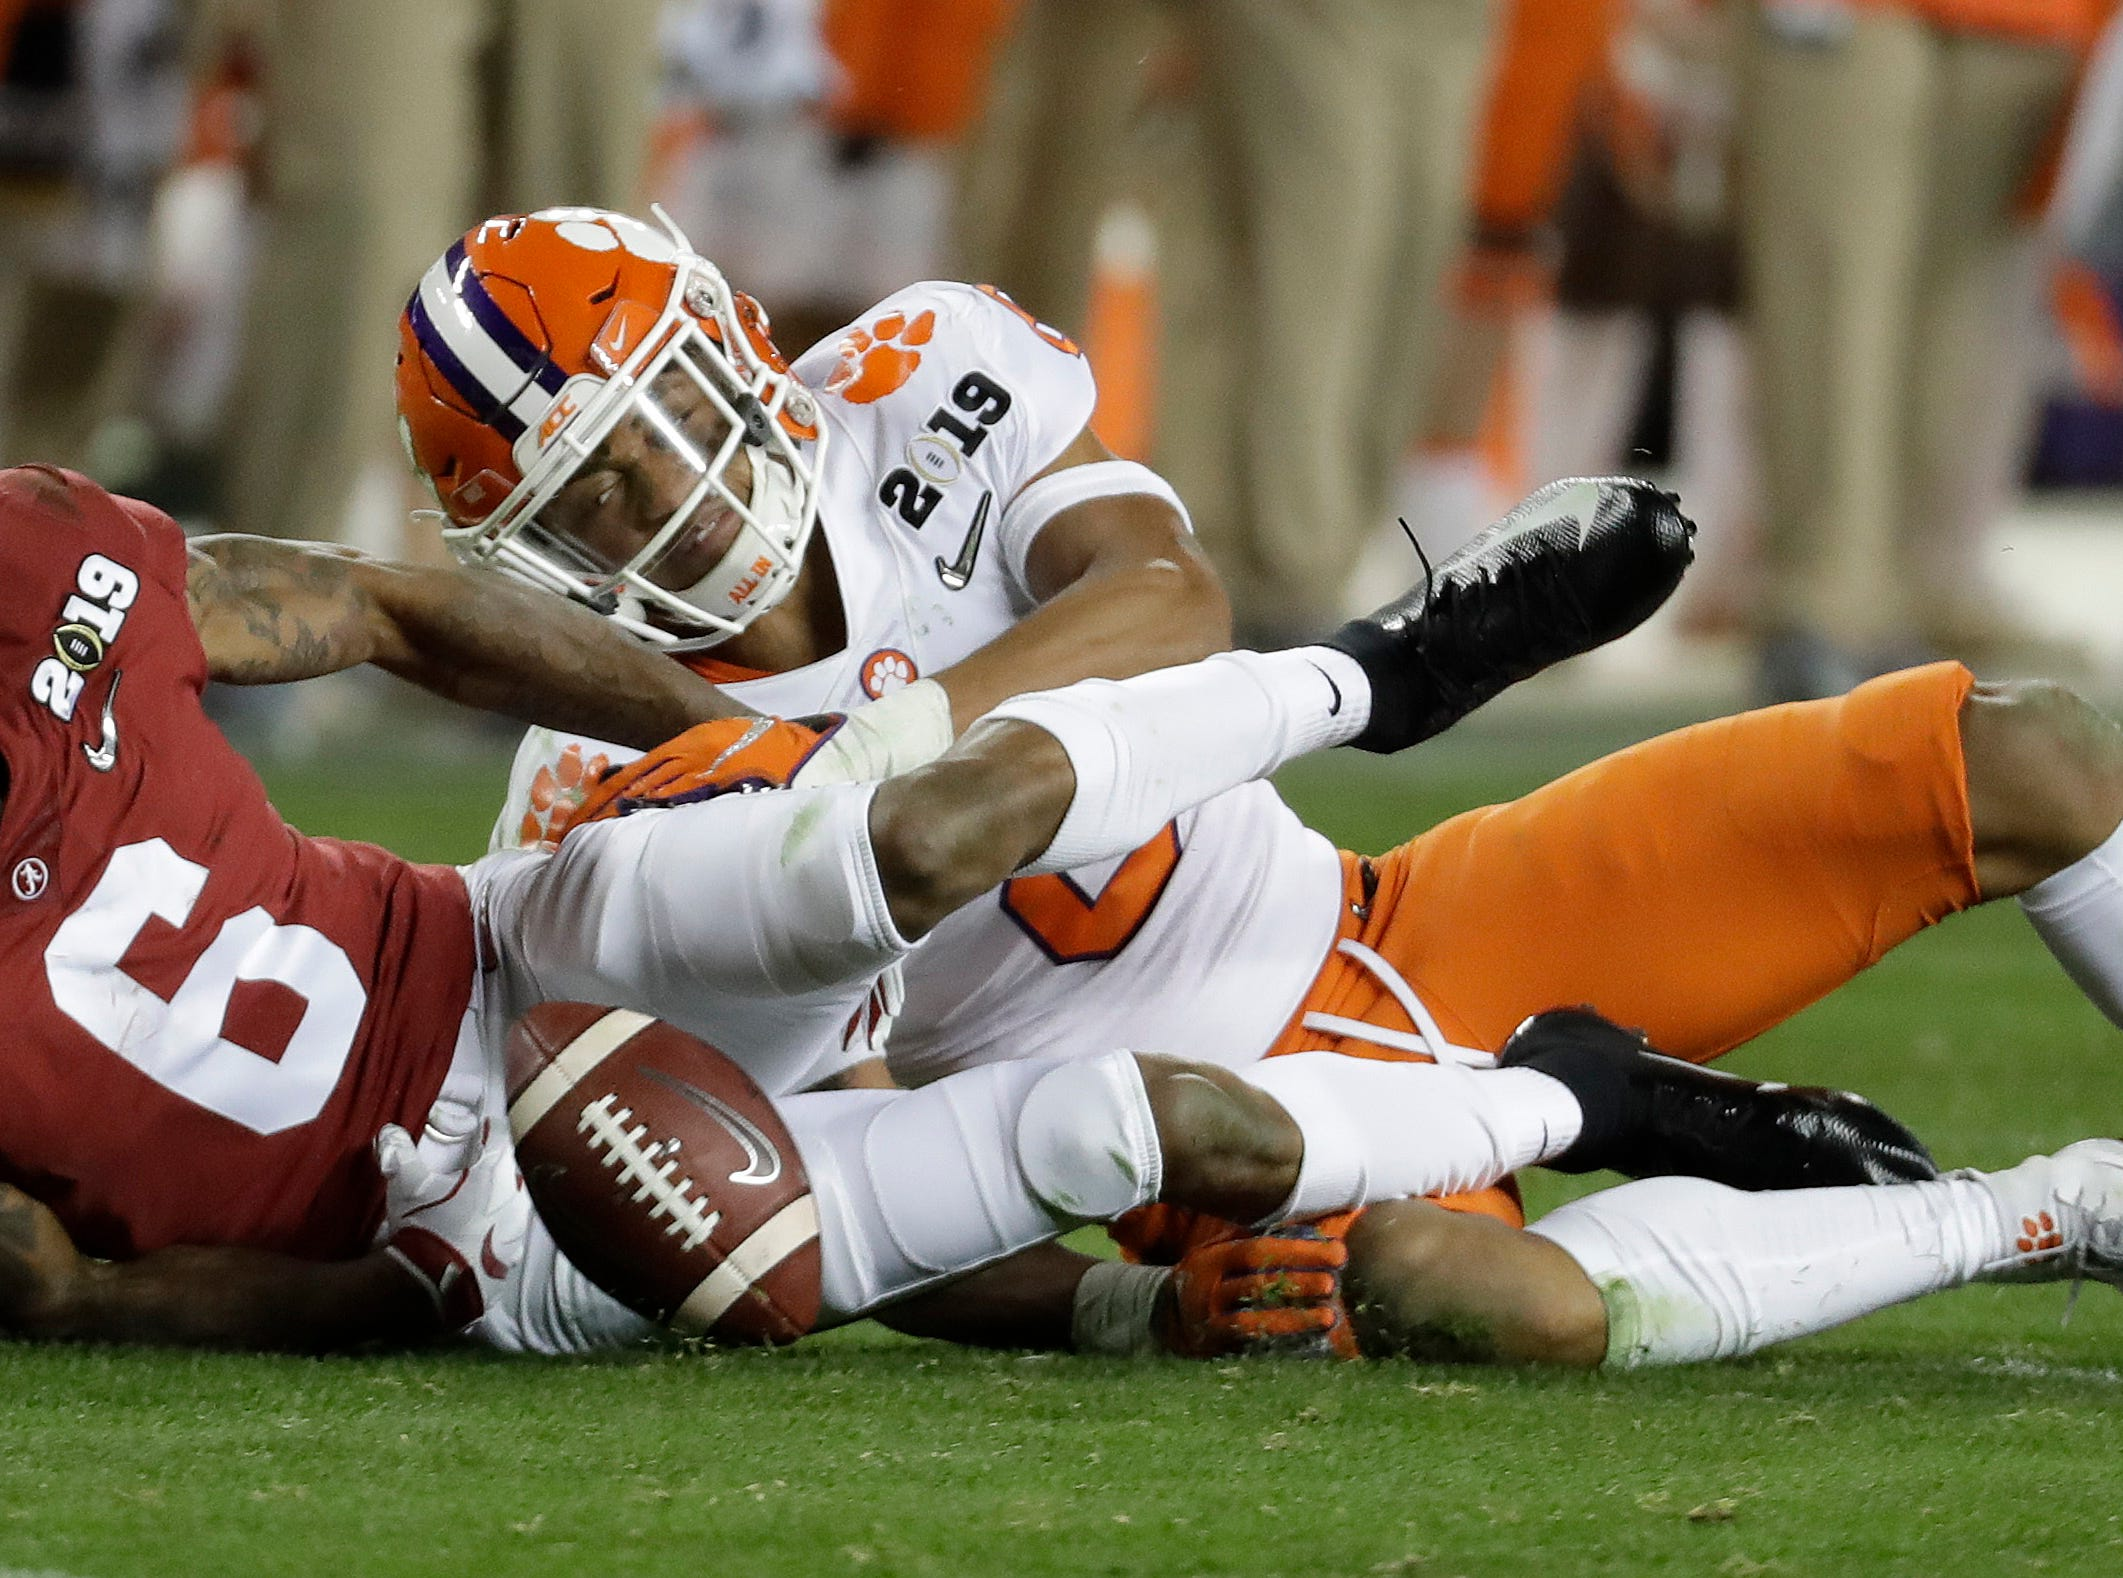 Alabama's DeVonta Smith recovers his own fumble during the second half of the NCAA college football playoff championship game against Clemson, Monday, Jan. 7, 2019, in Santa Clara, Calif. (AP Photo/Chris Carlson)